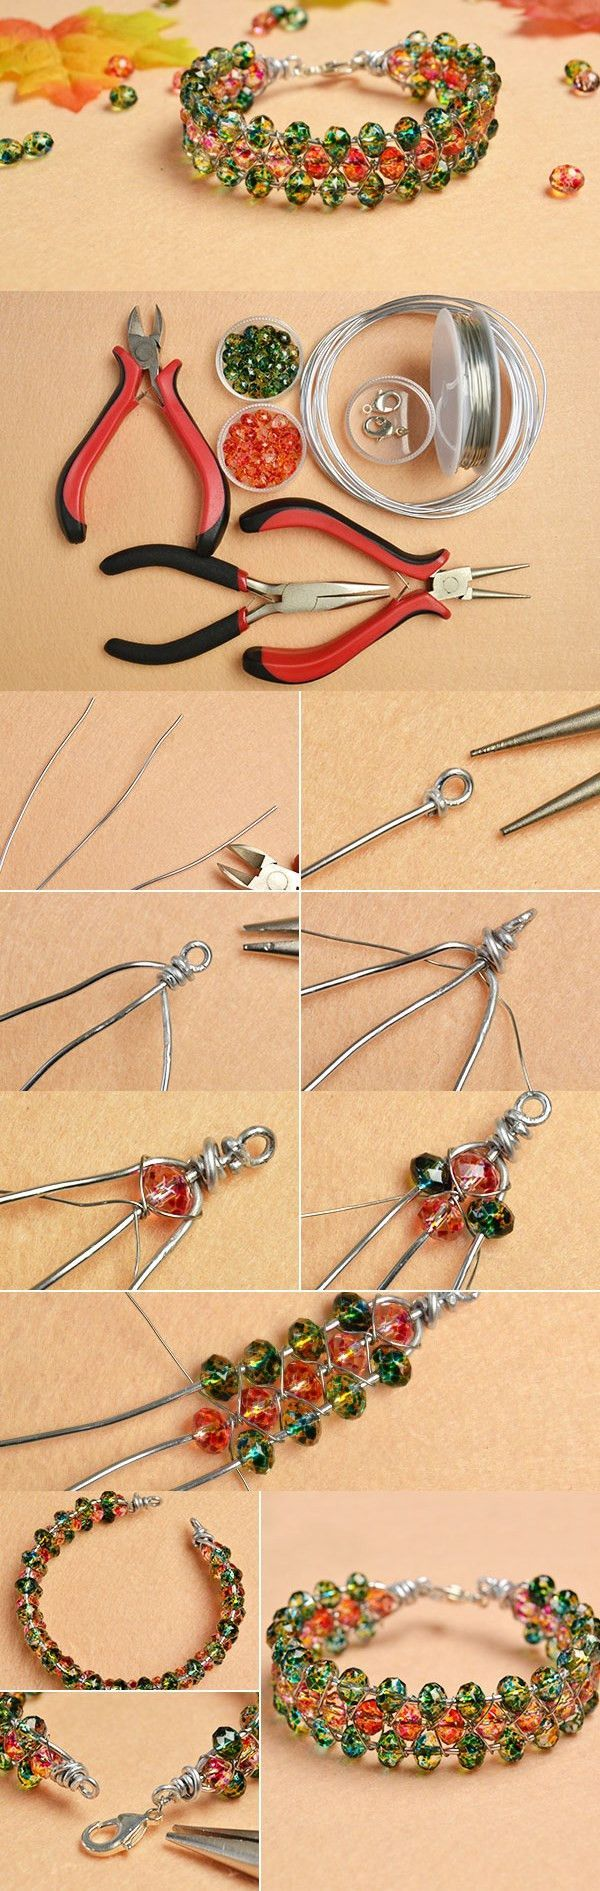 Making a Handmade 3-stand Glass Beads Bracelet with Aluminum Wire